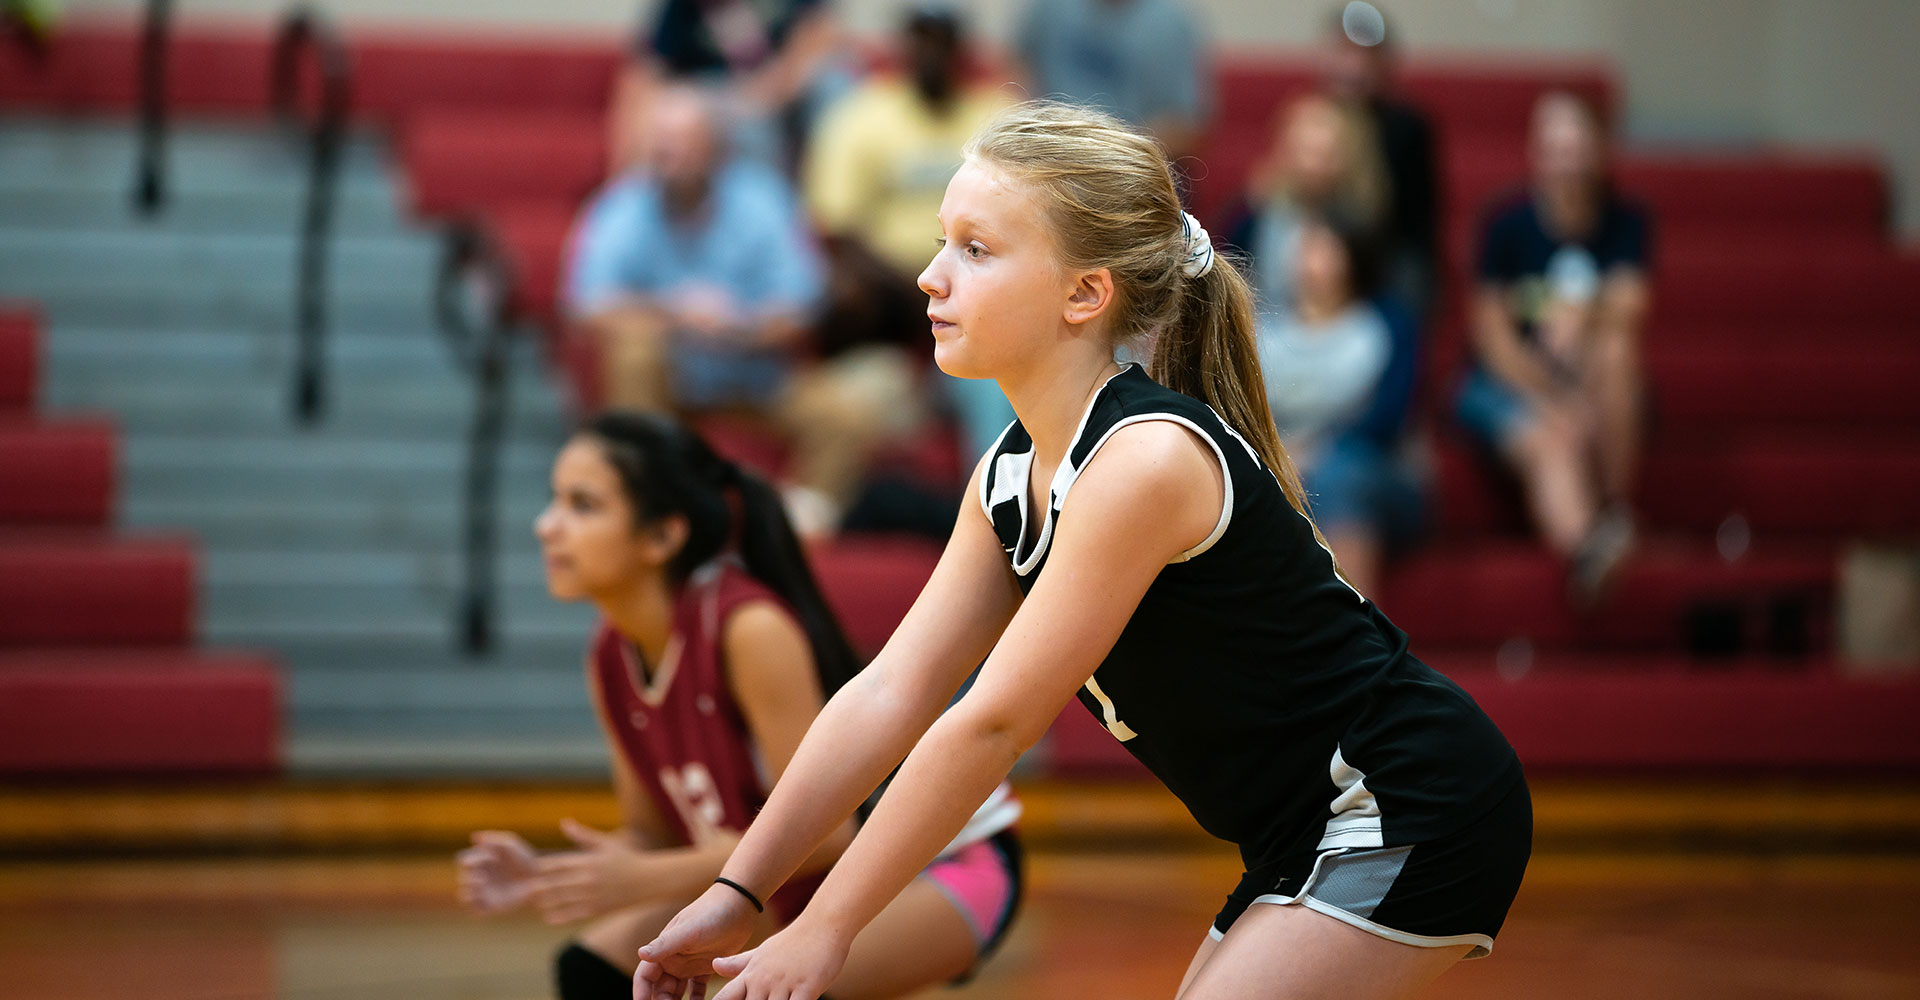 Featured Image: Middle School Athletics